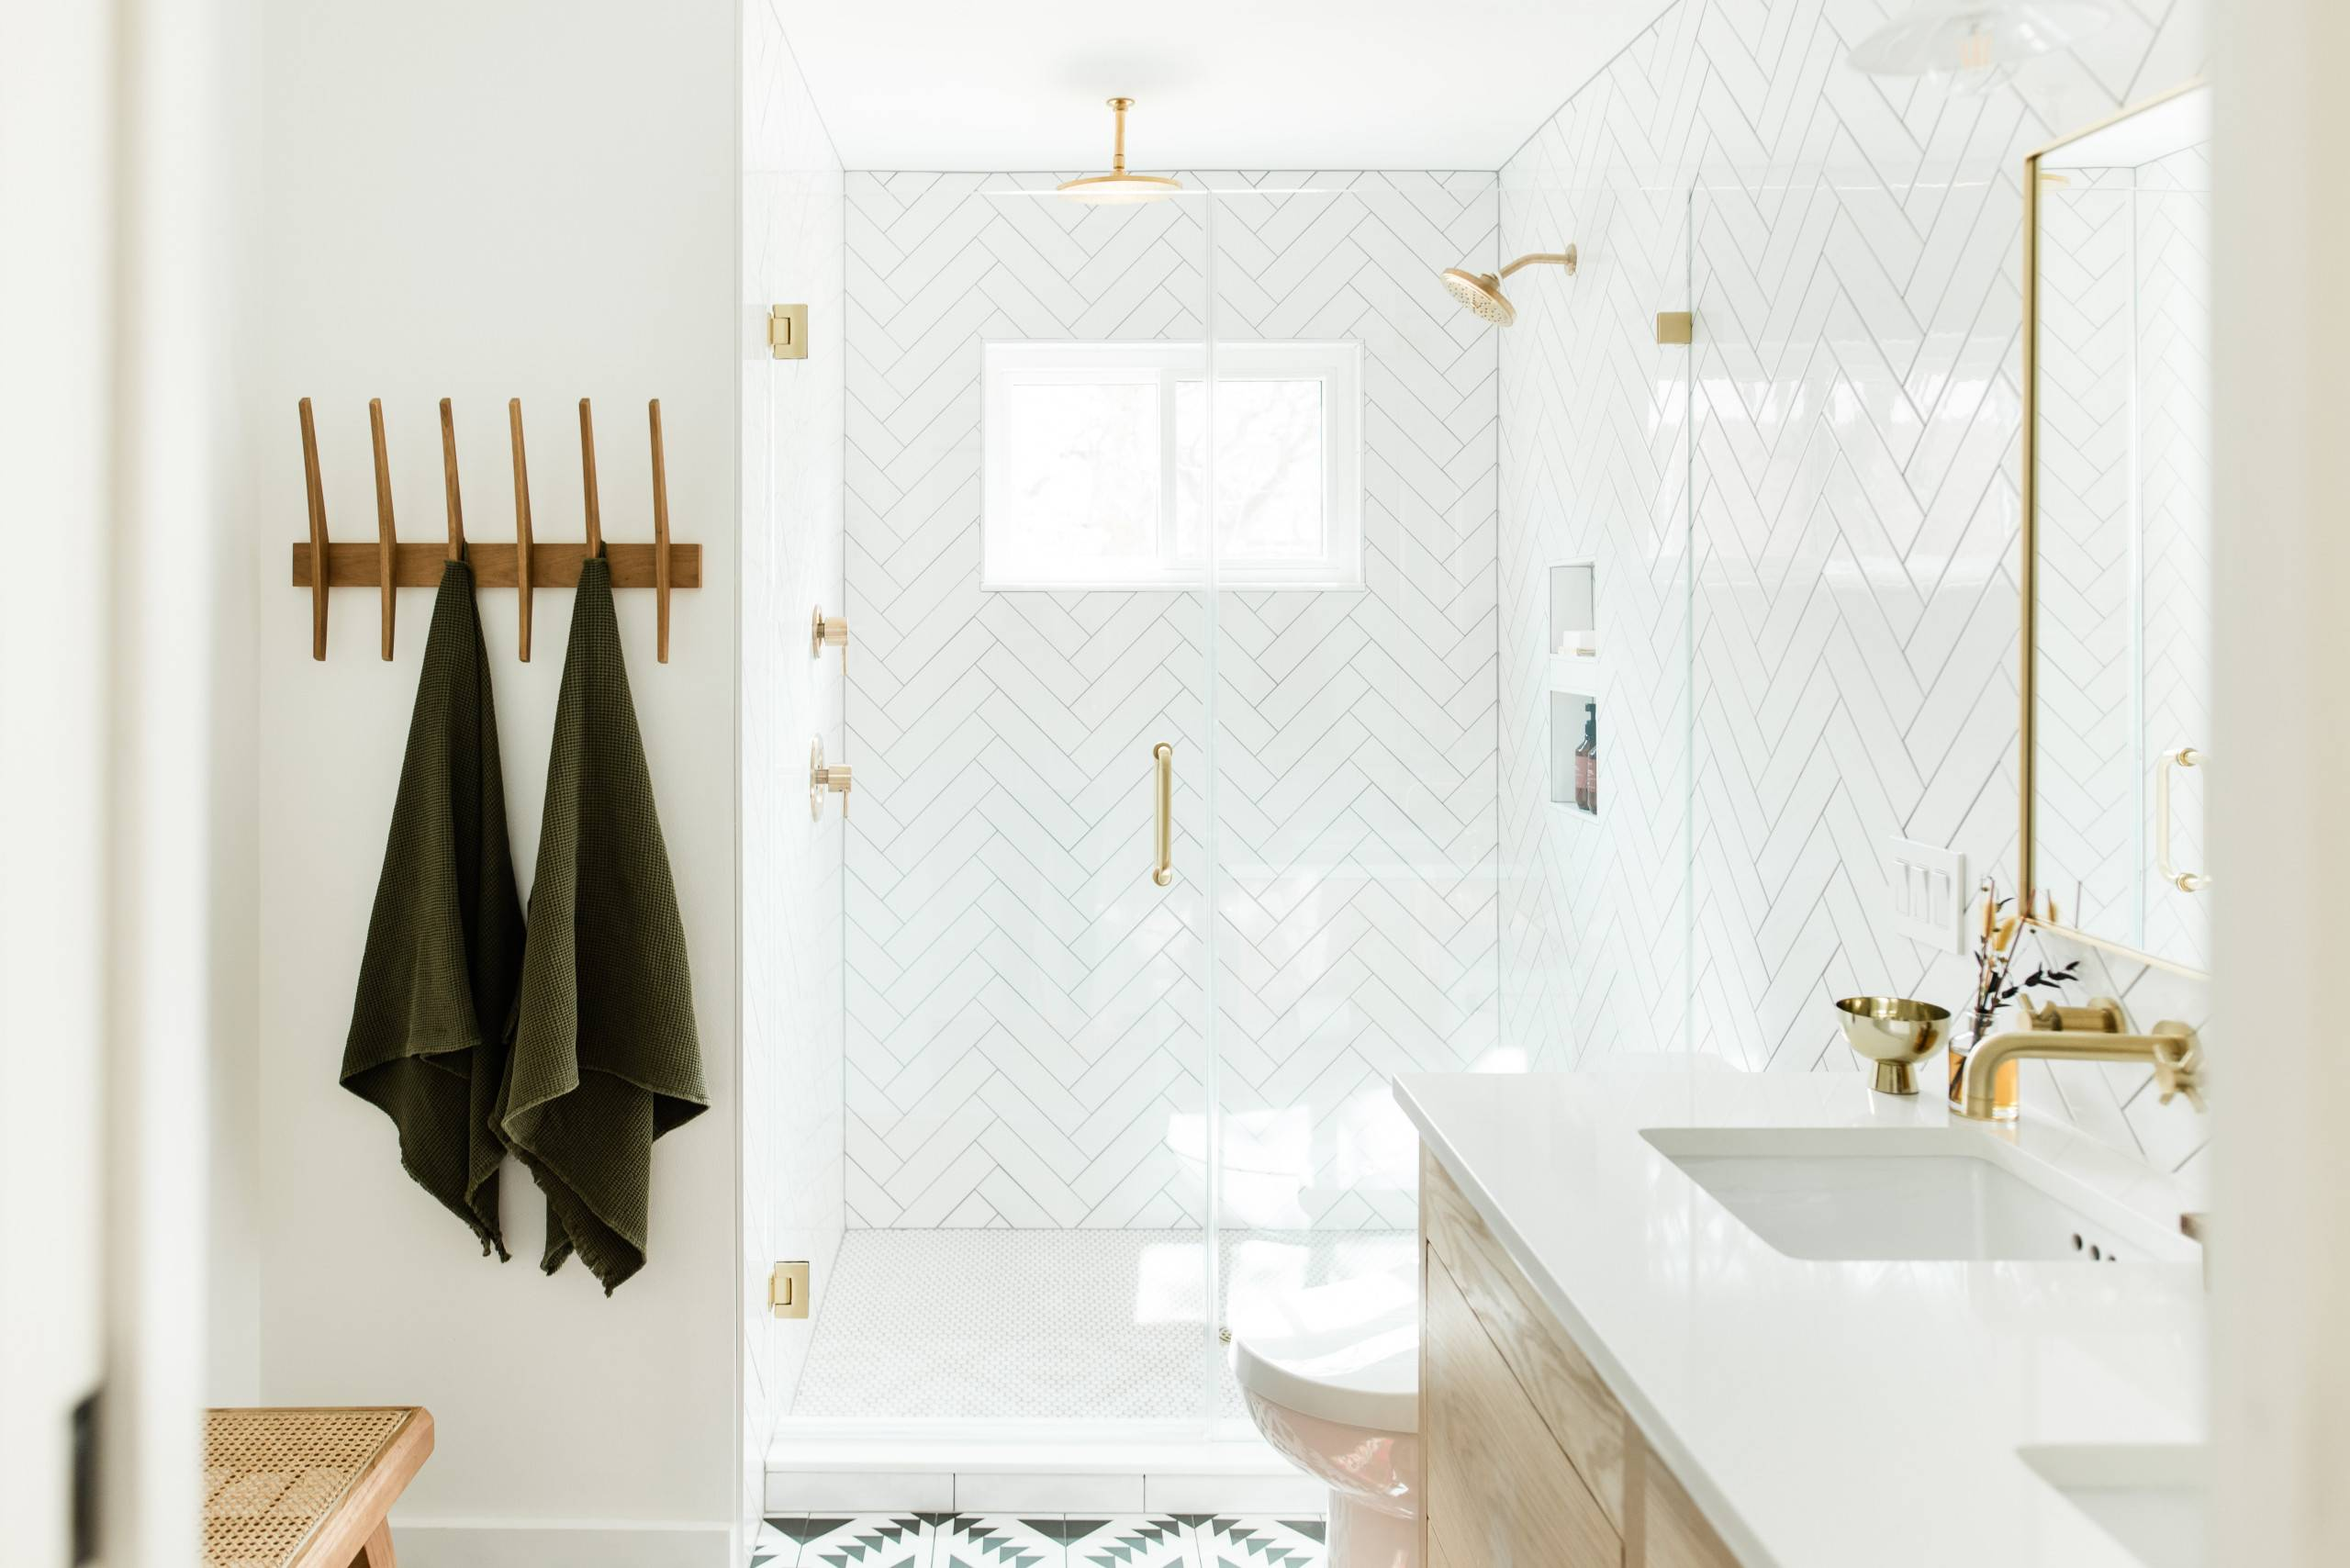 White-brass-and-wood-bathroom-with-herringbone-pattterned-shower-area-that-makes-a-difference-68743